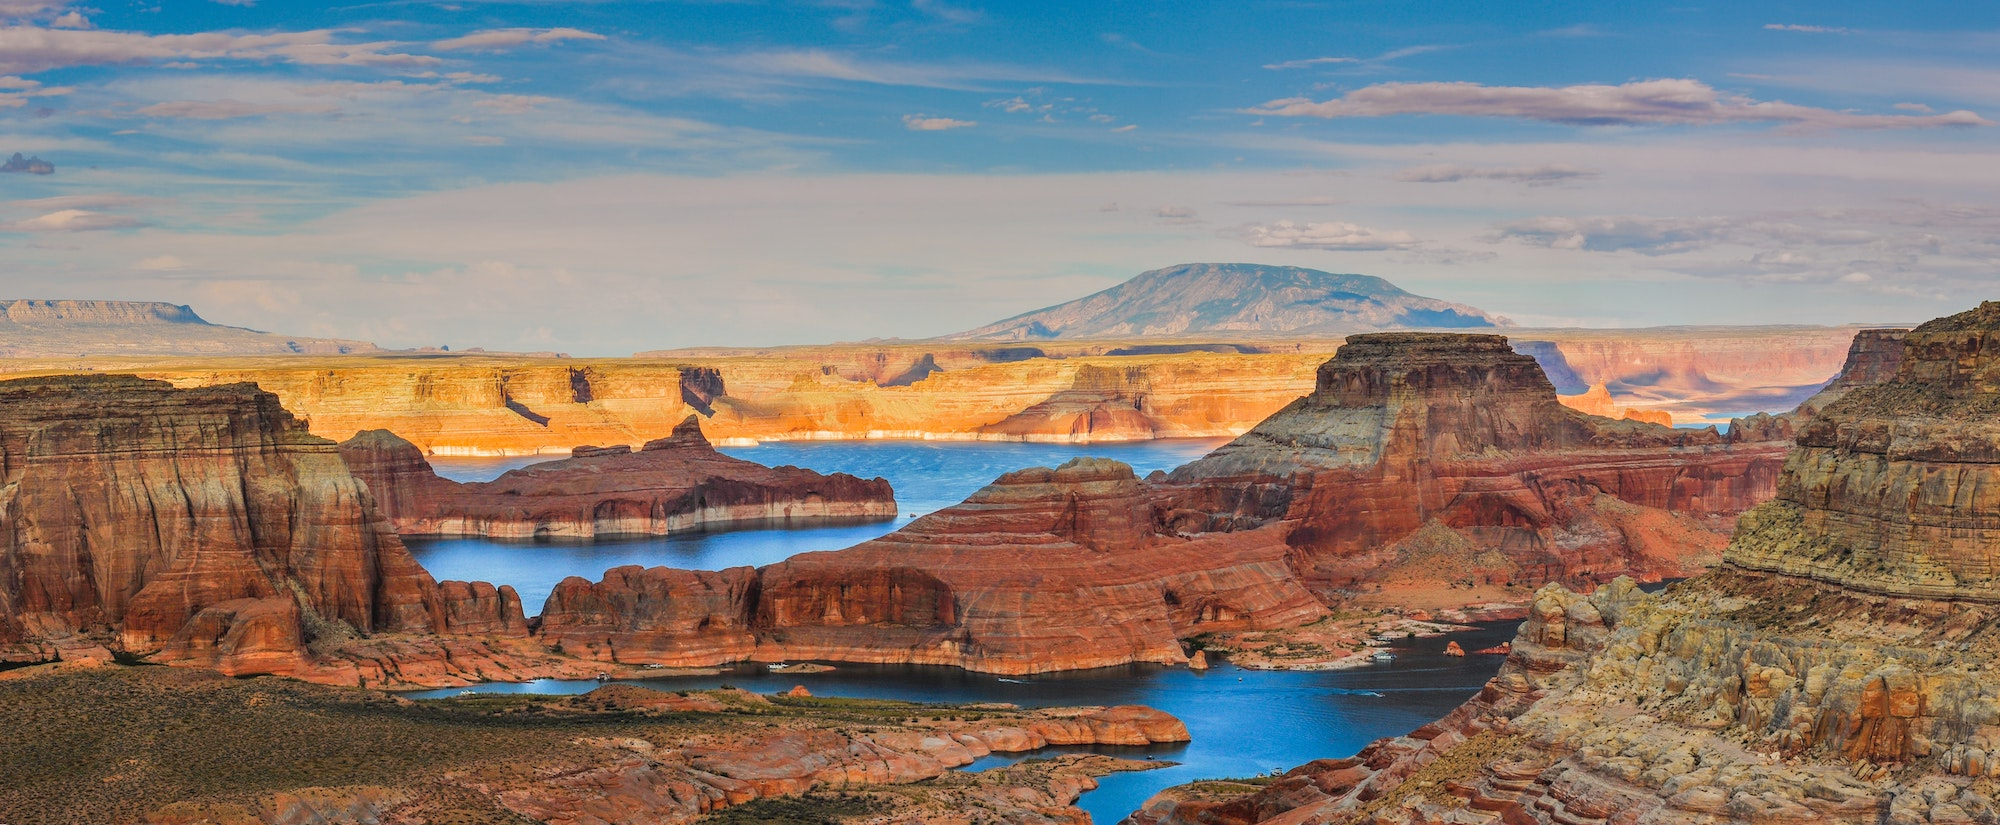 alstrom point in page arizona overlooking lake powell